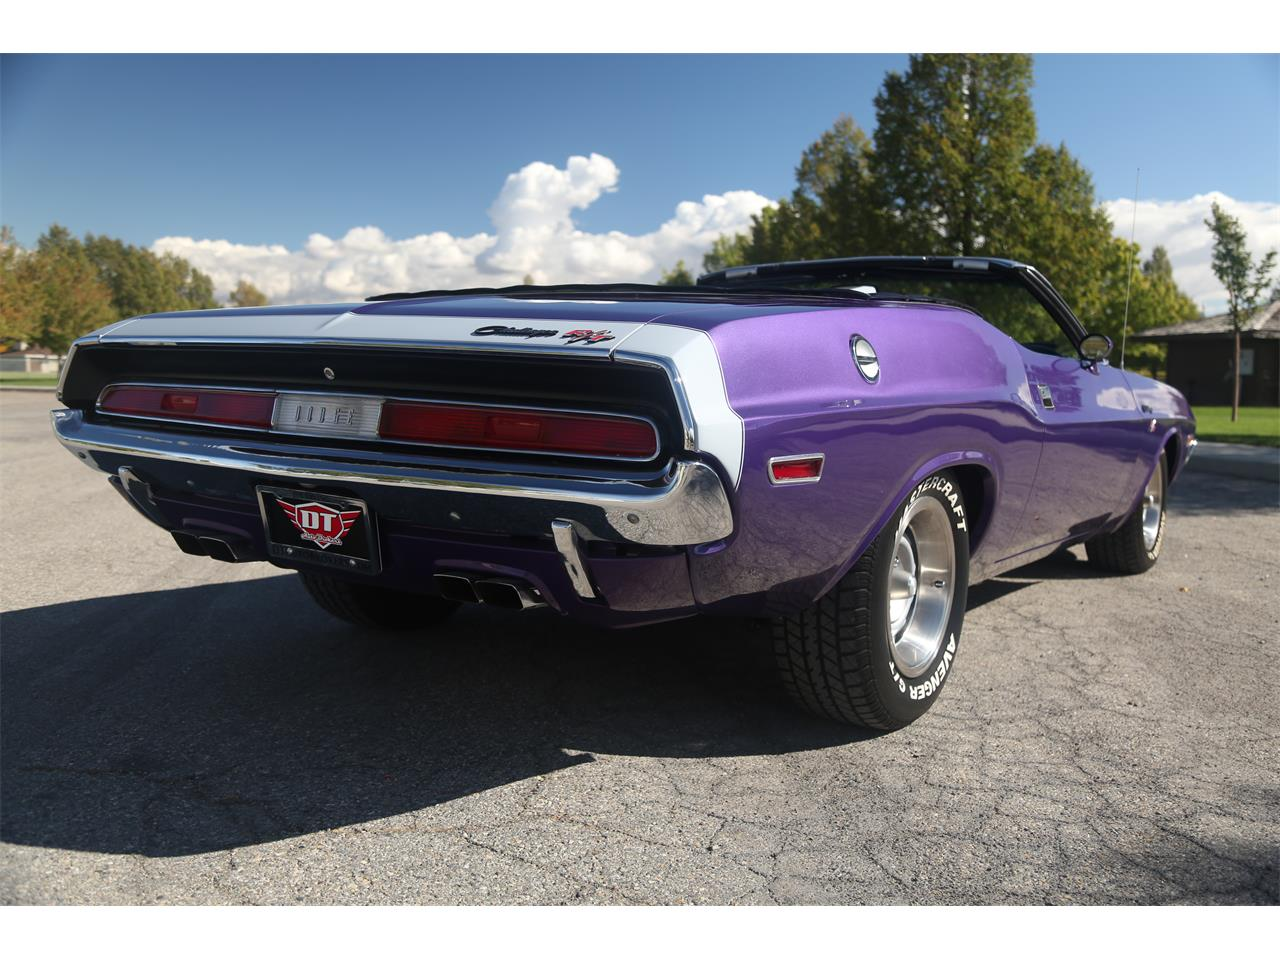 Large Picture of '70 Challenger located in West Valley City Utah - $89,000.00 Offered by DT Auto Brokers - M9RV